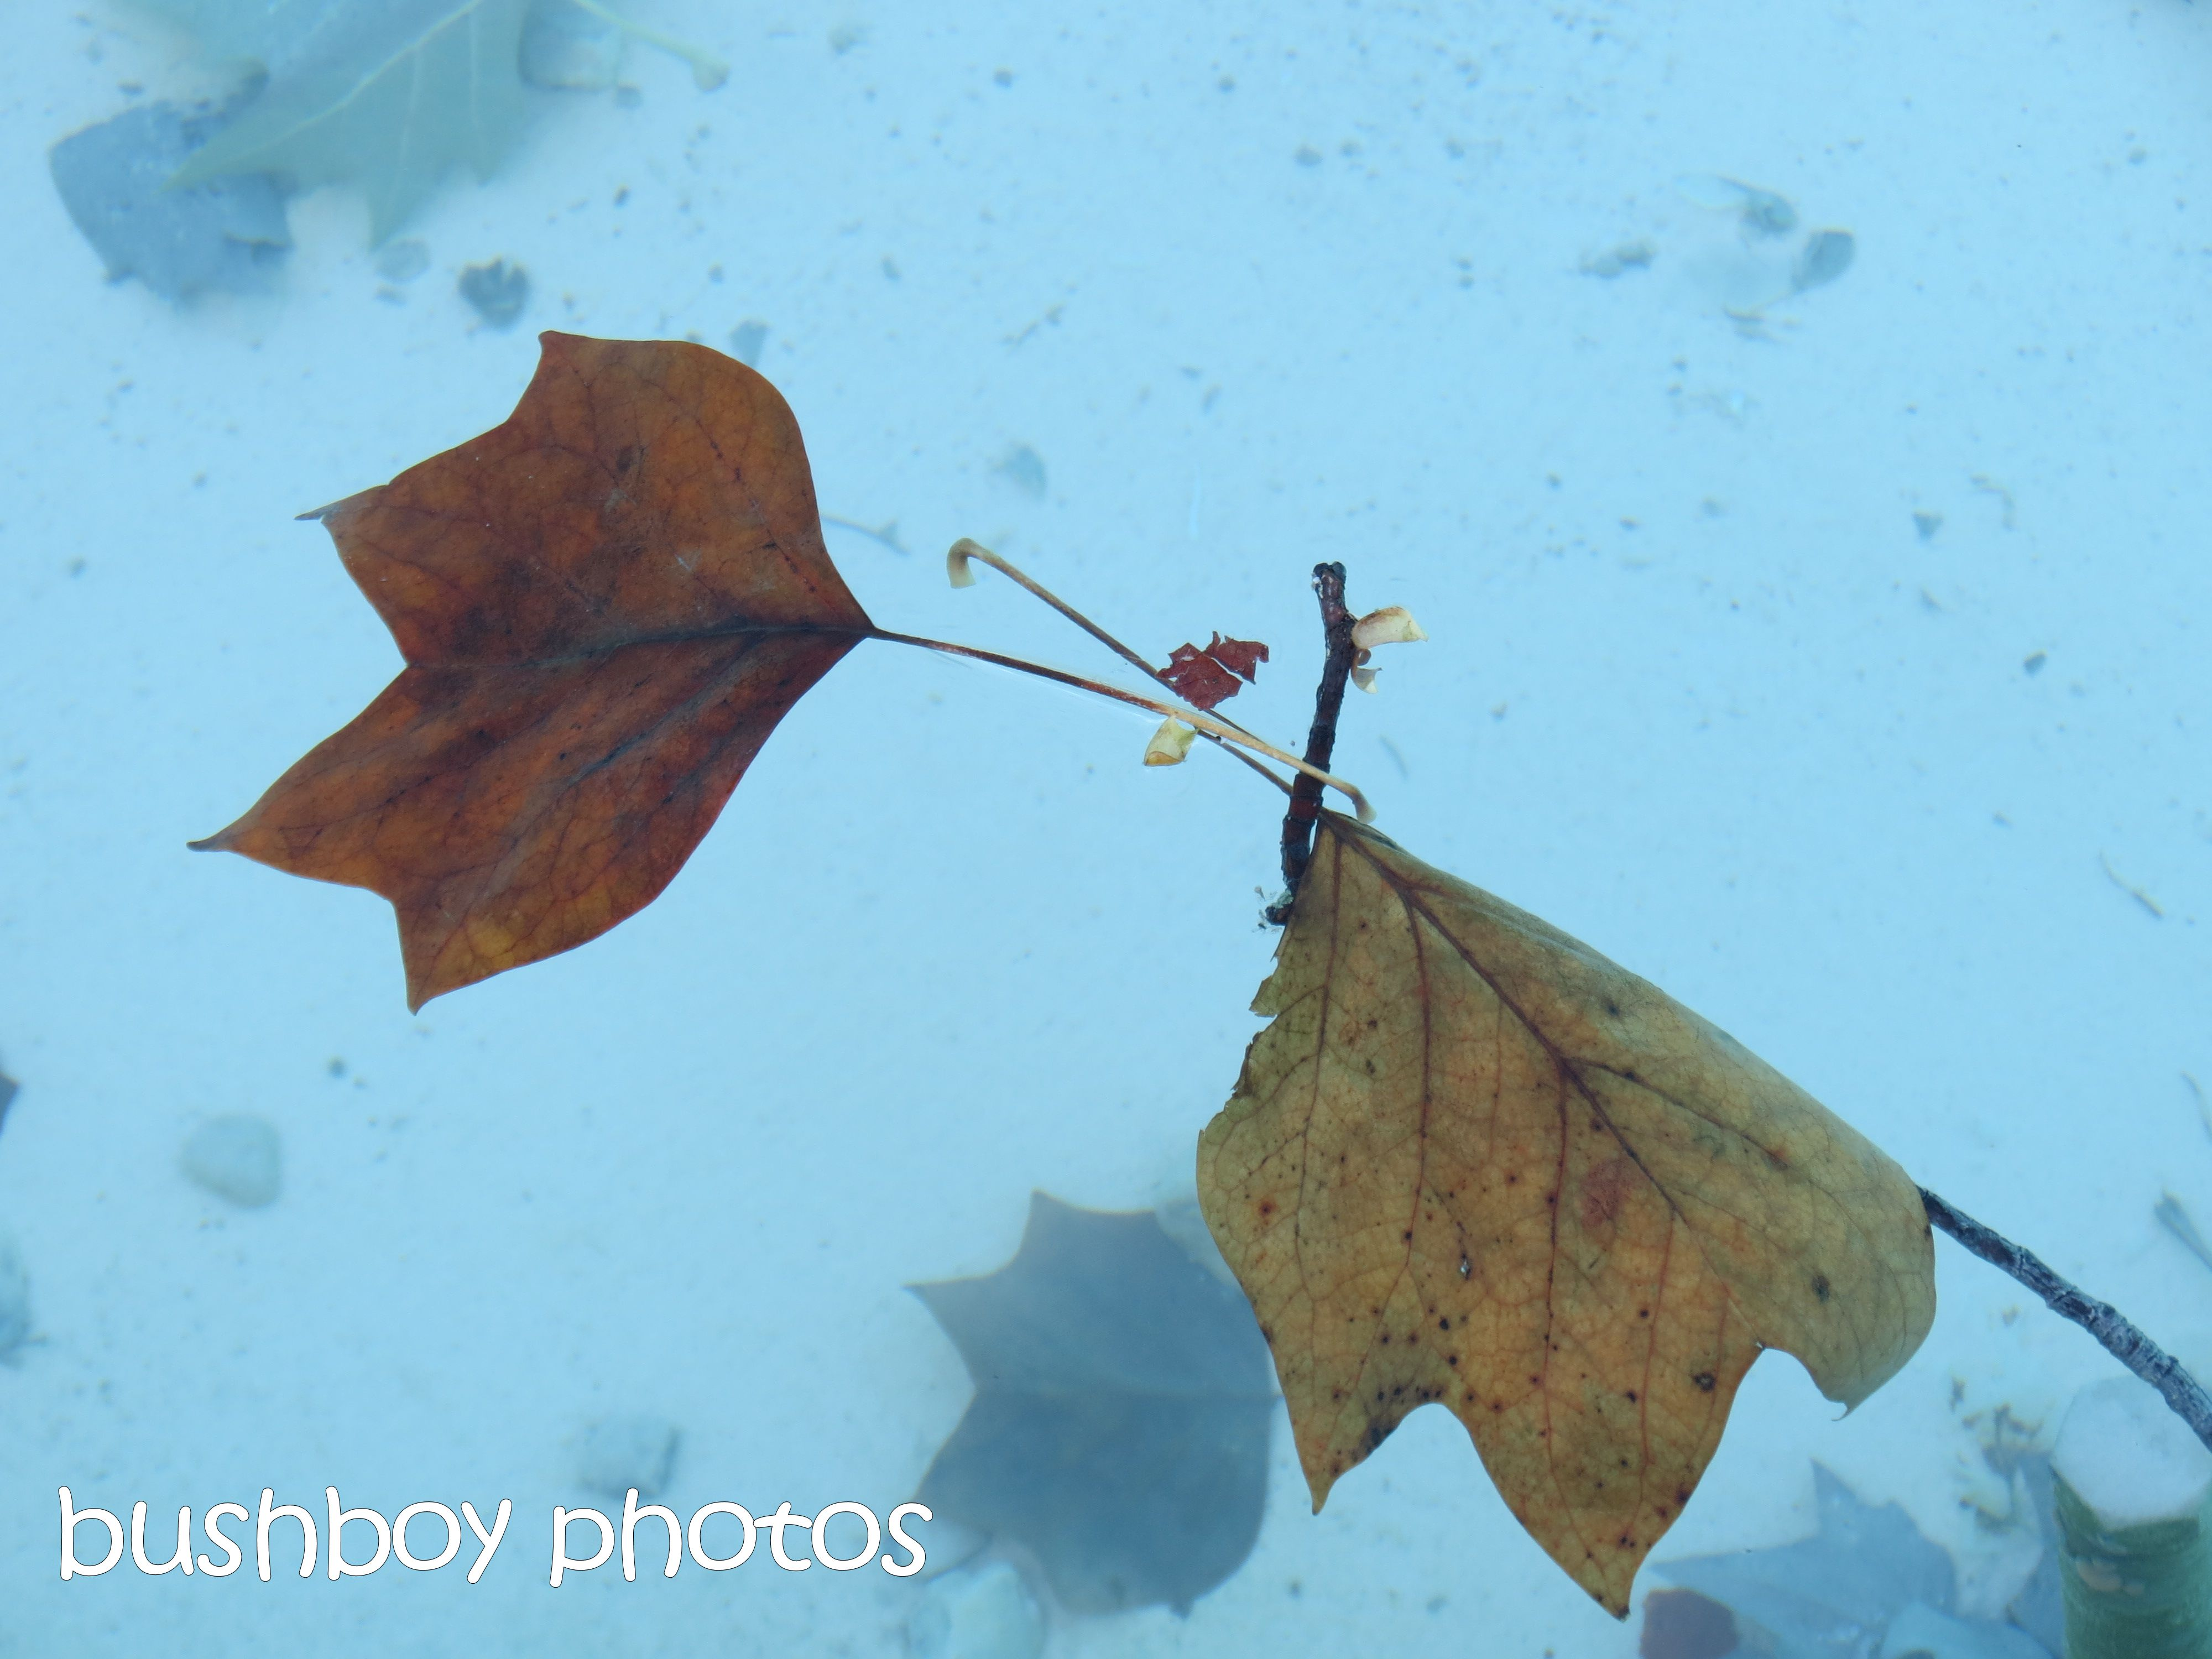 leaves_dijon_named_oct 2015